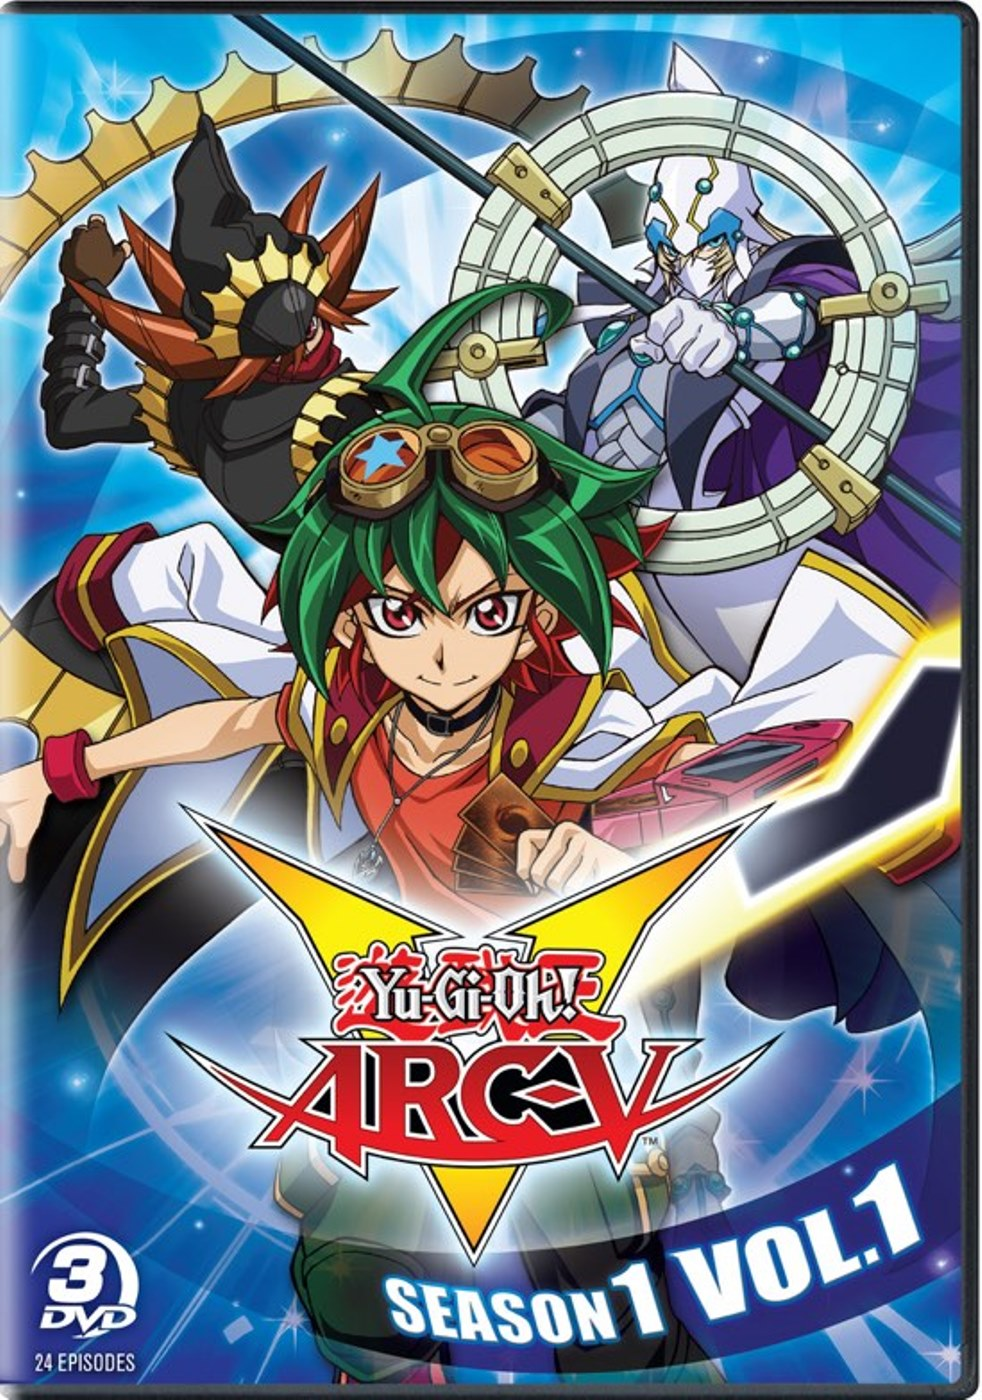 YuGiOh Arc V Season 1 Volume 1 DVD 883476151564